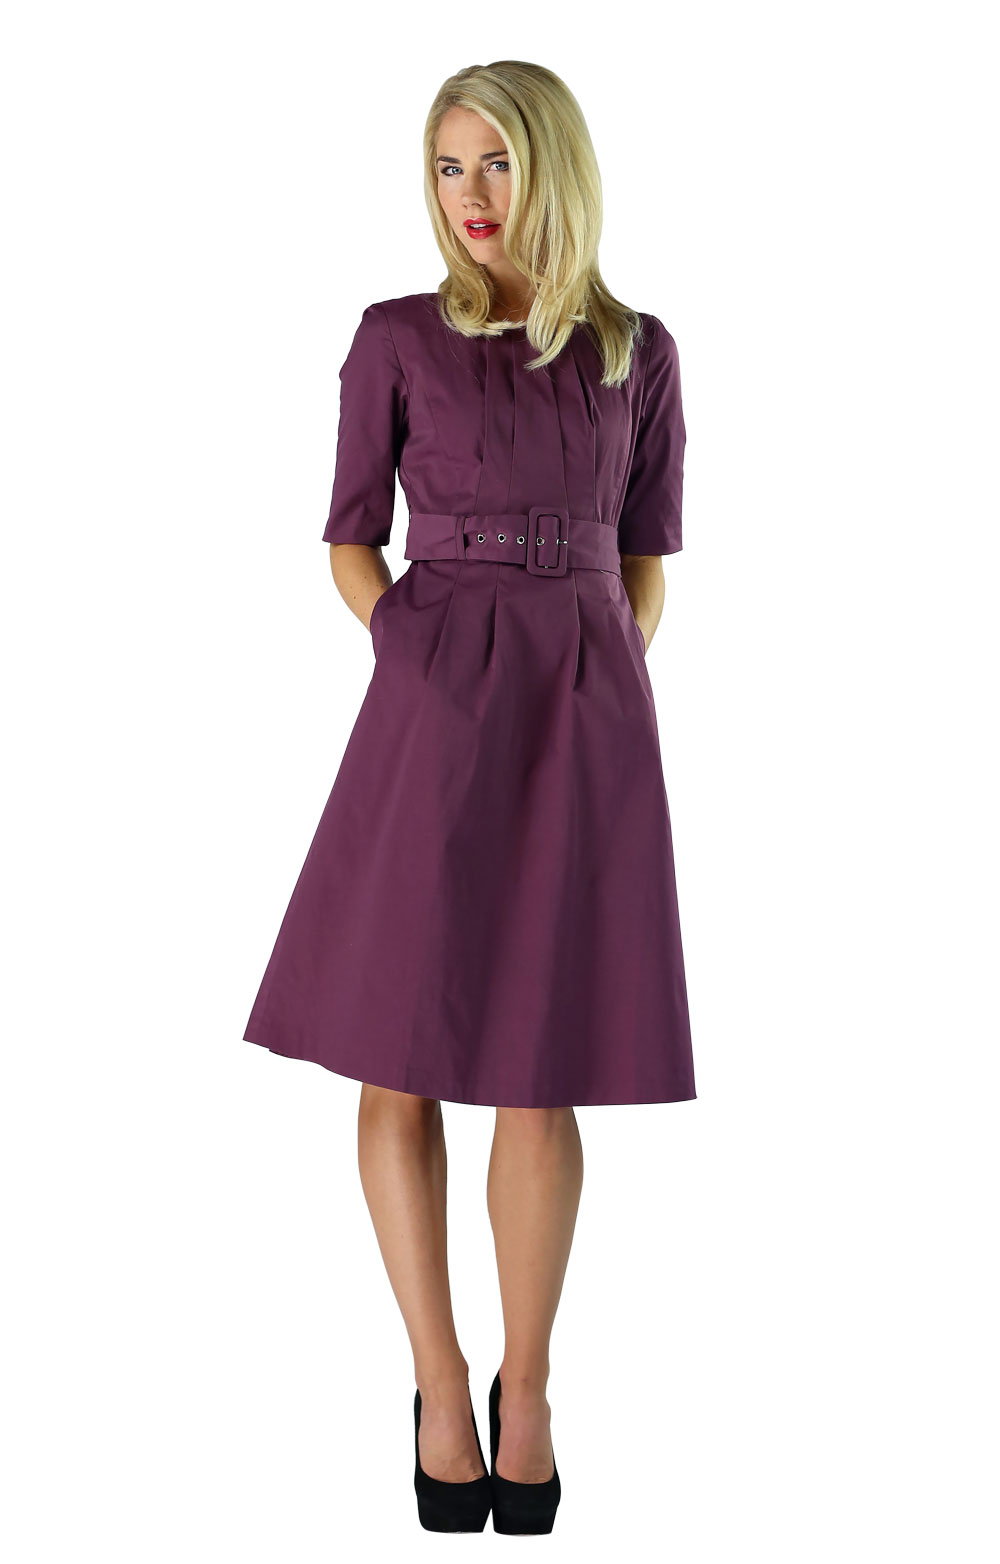 Modest Dresses for Church LDS Modest Dresses Modest Casual ...